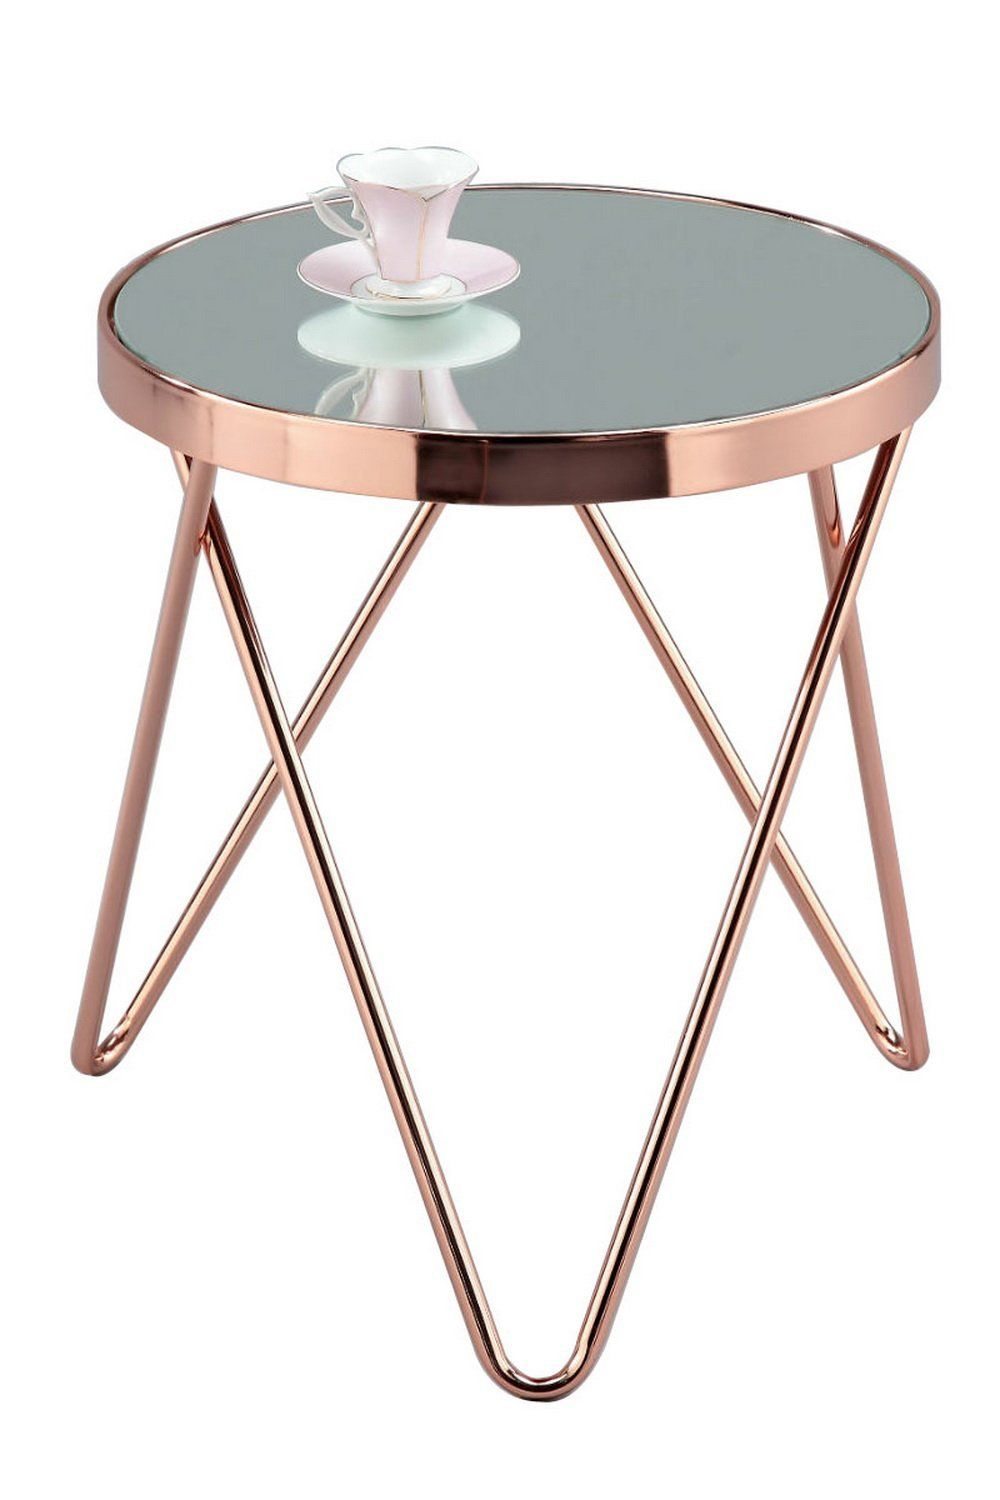 Grote Smalle Sidetable.Rose Gold Side Table Aspect Puccini Mirrored Glass Round